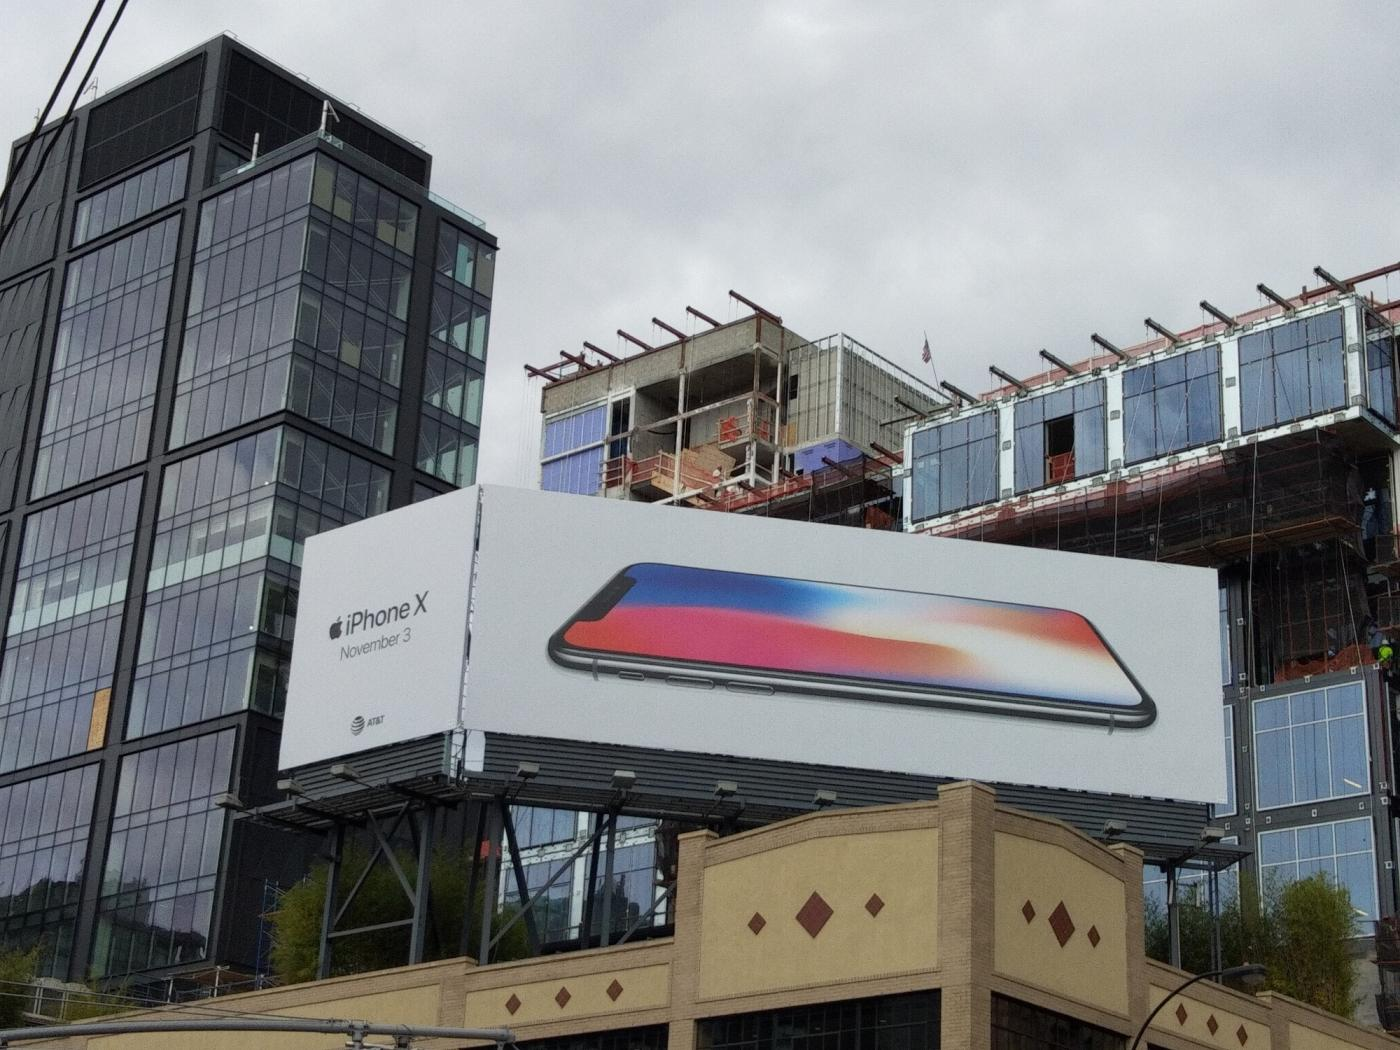 New York: A hoarding of Apple iPhone X smartphone on display in New York on Oct 23, 2017. (Photo: IANS) by .